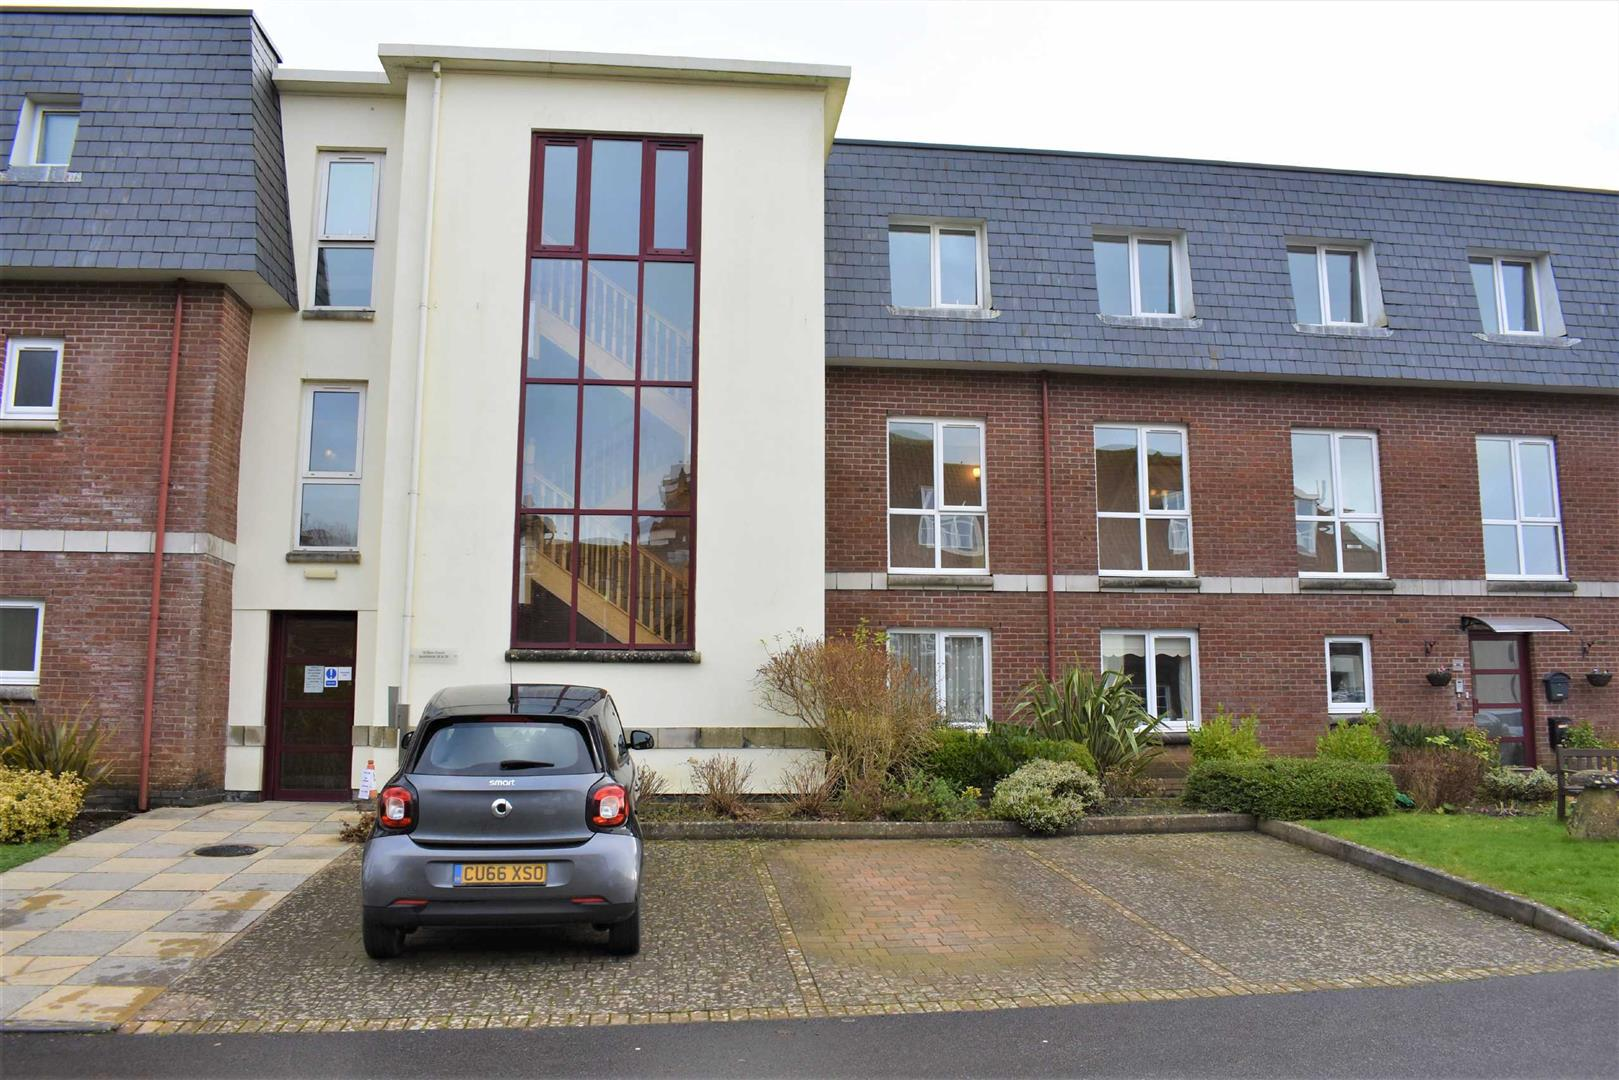 Willow Court, Clyne Common, Swansea, SA3 3JB